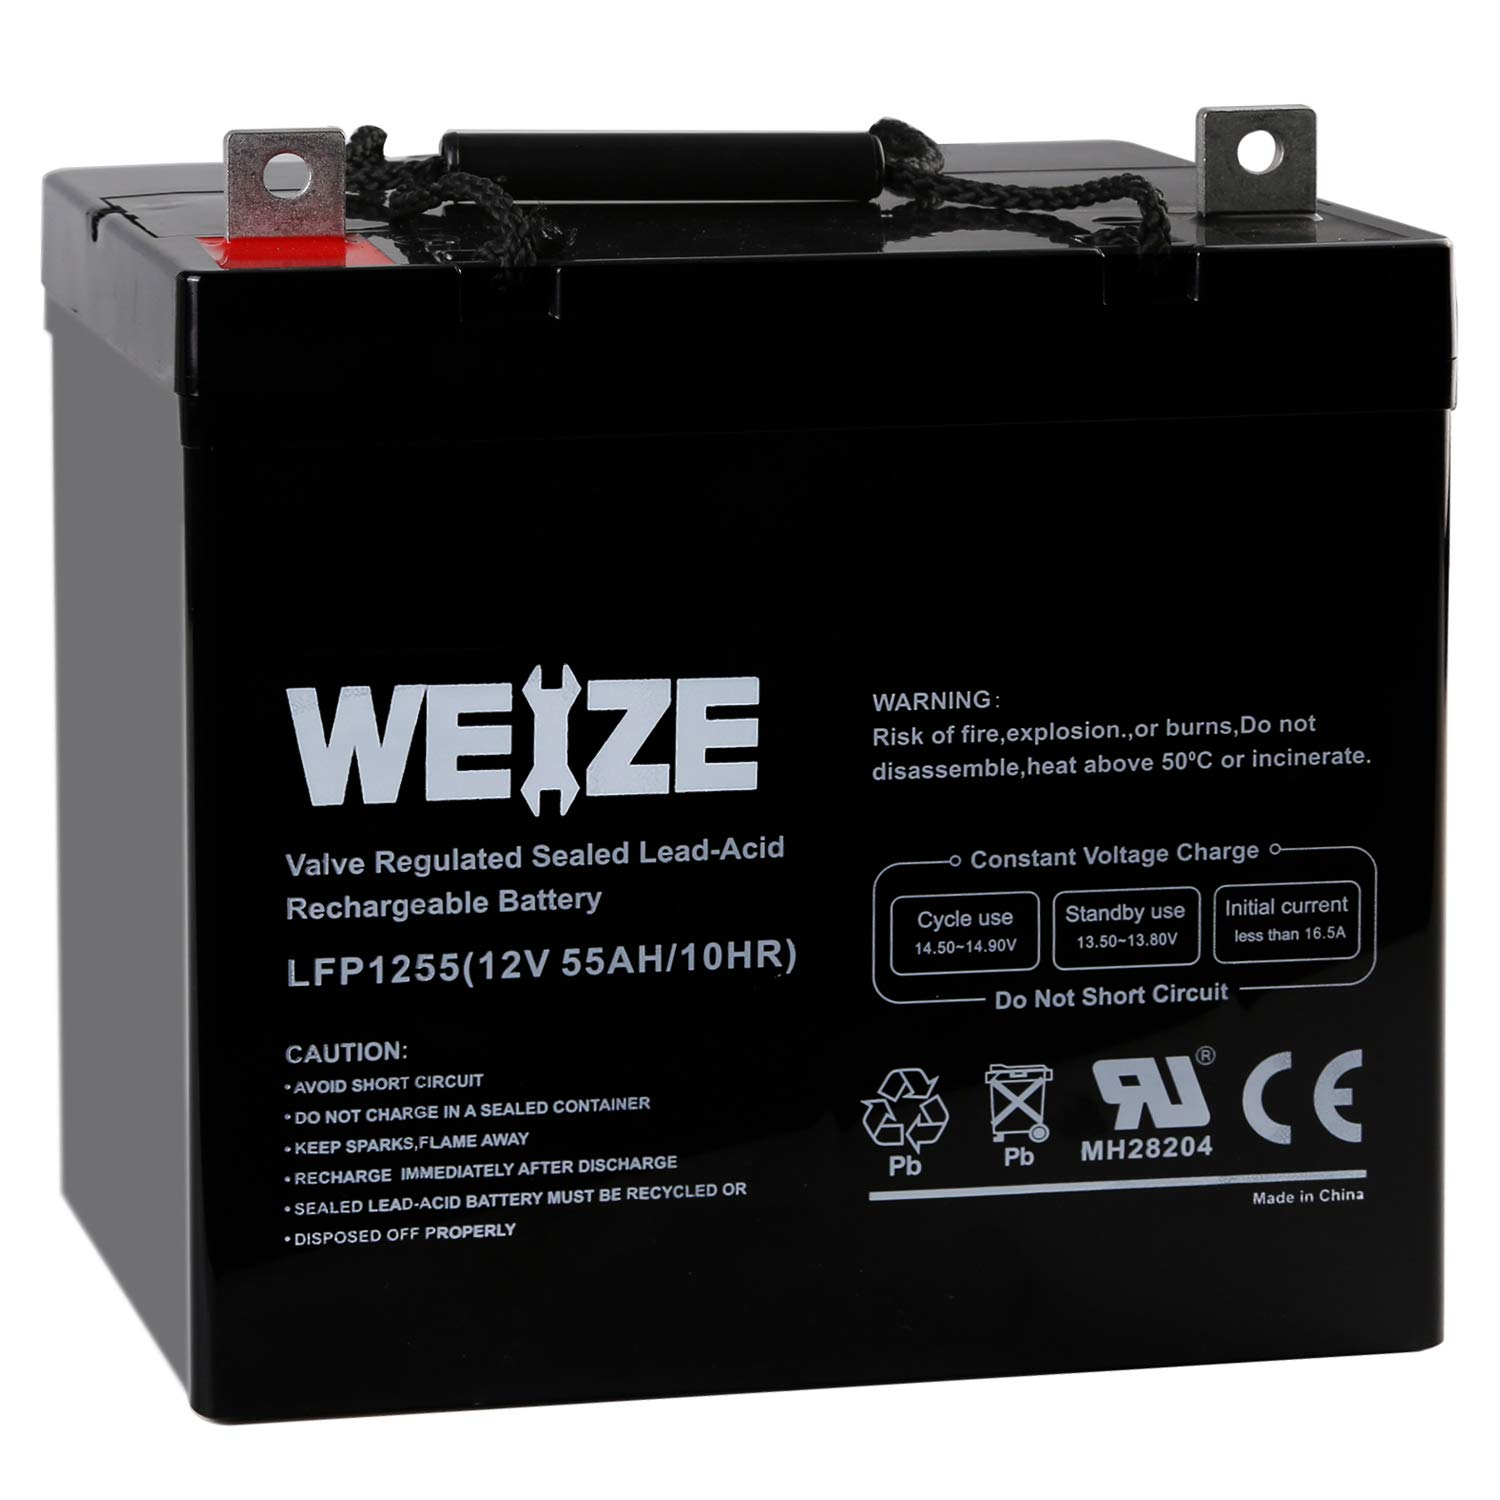 Weize 12V 55AH Deep Cycle Battery UB12550 For Power Scooter Wheelchair Mobility Emergency UPS System Trolling Motor by WEIZE